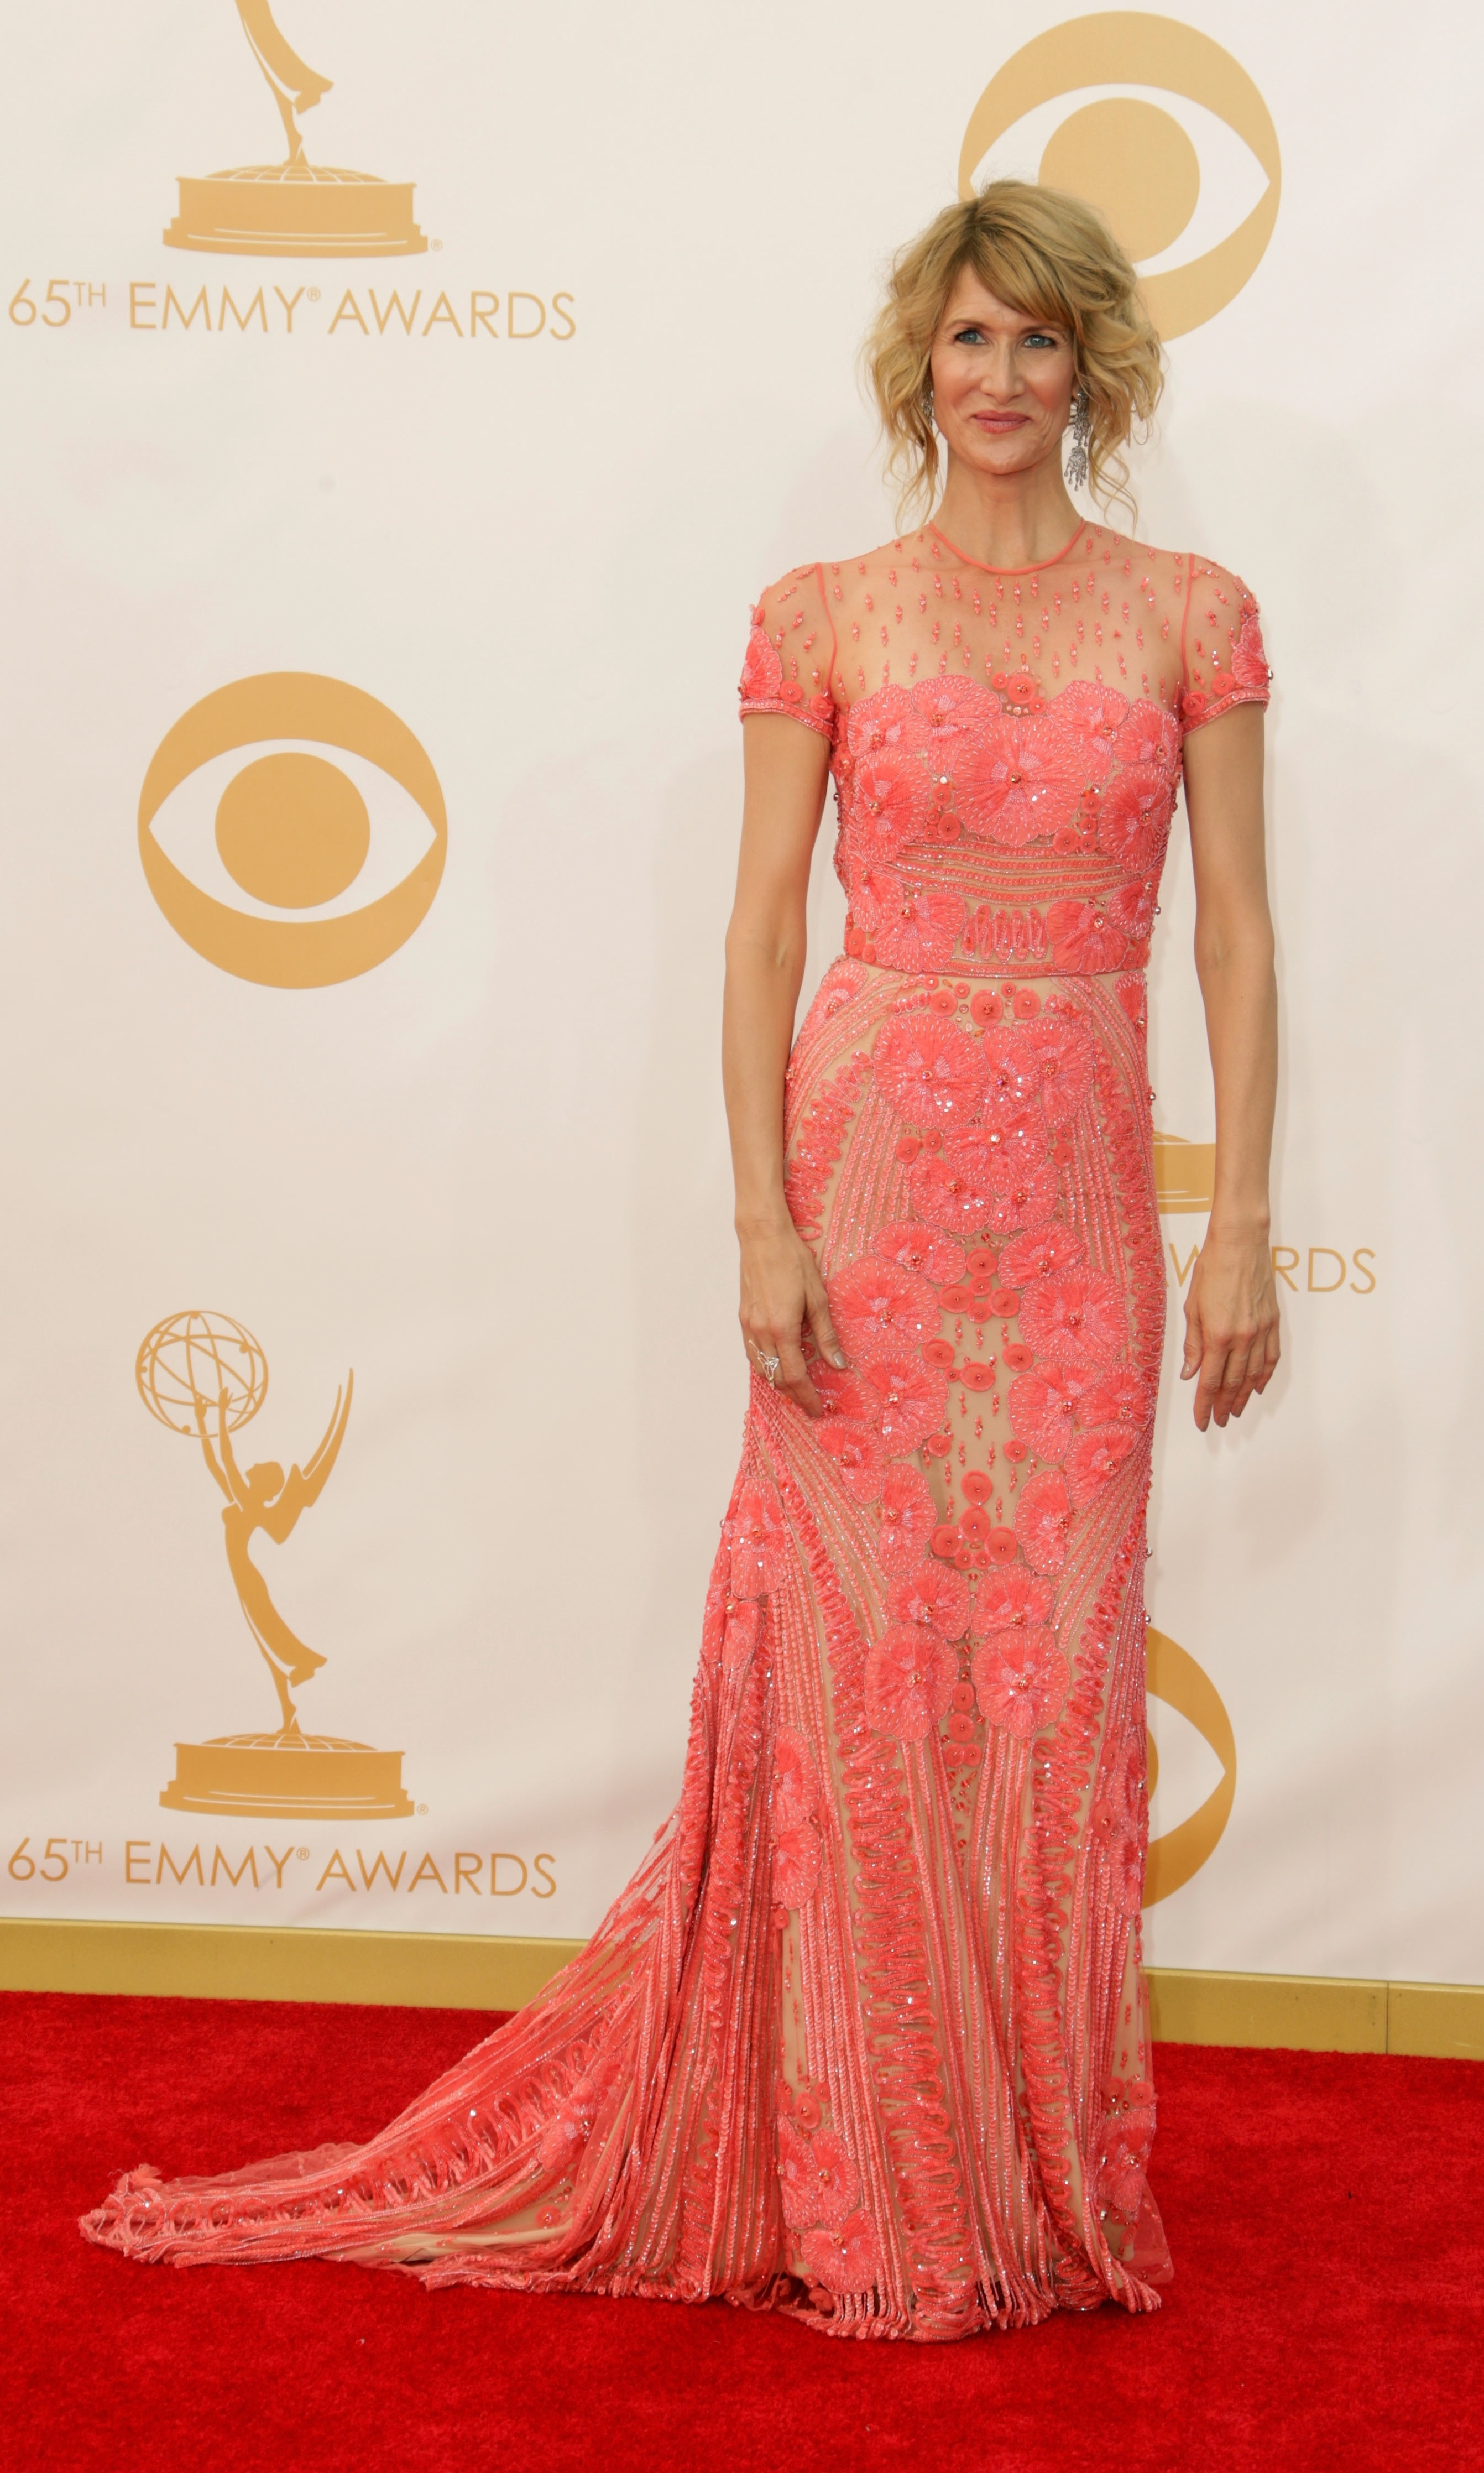 Emmy Award-winner Laura Dern's pink lace confection is like wearable candy, and we love how the Naeem Khan gown still shows some skin.